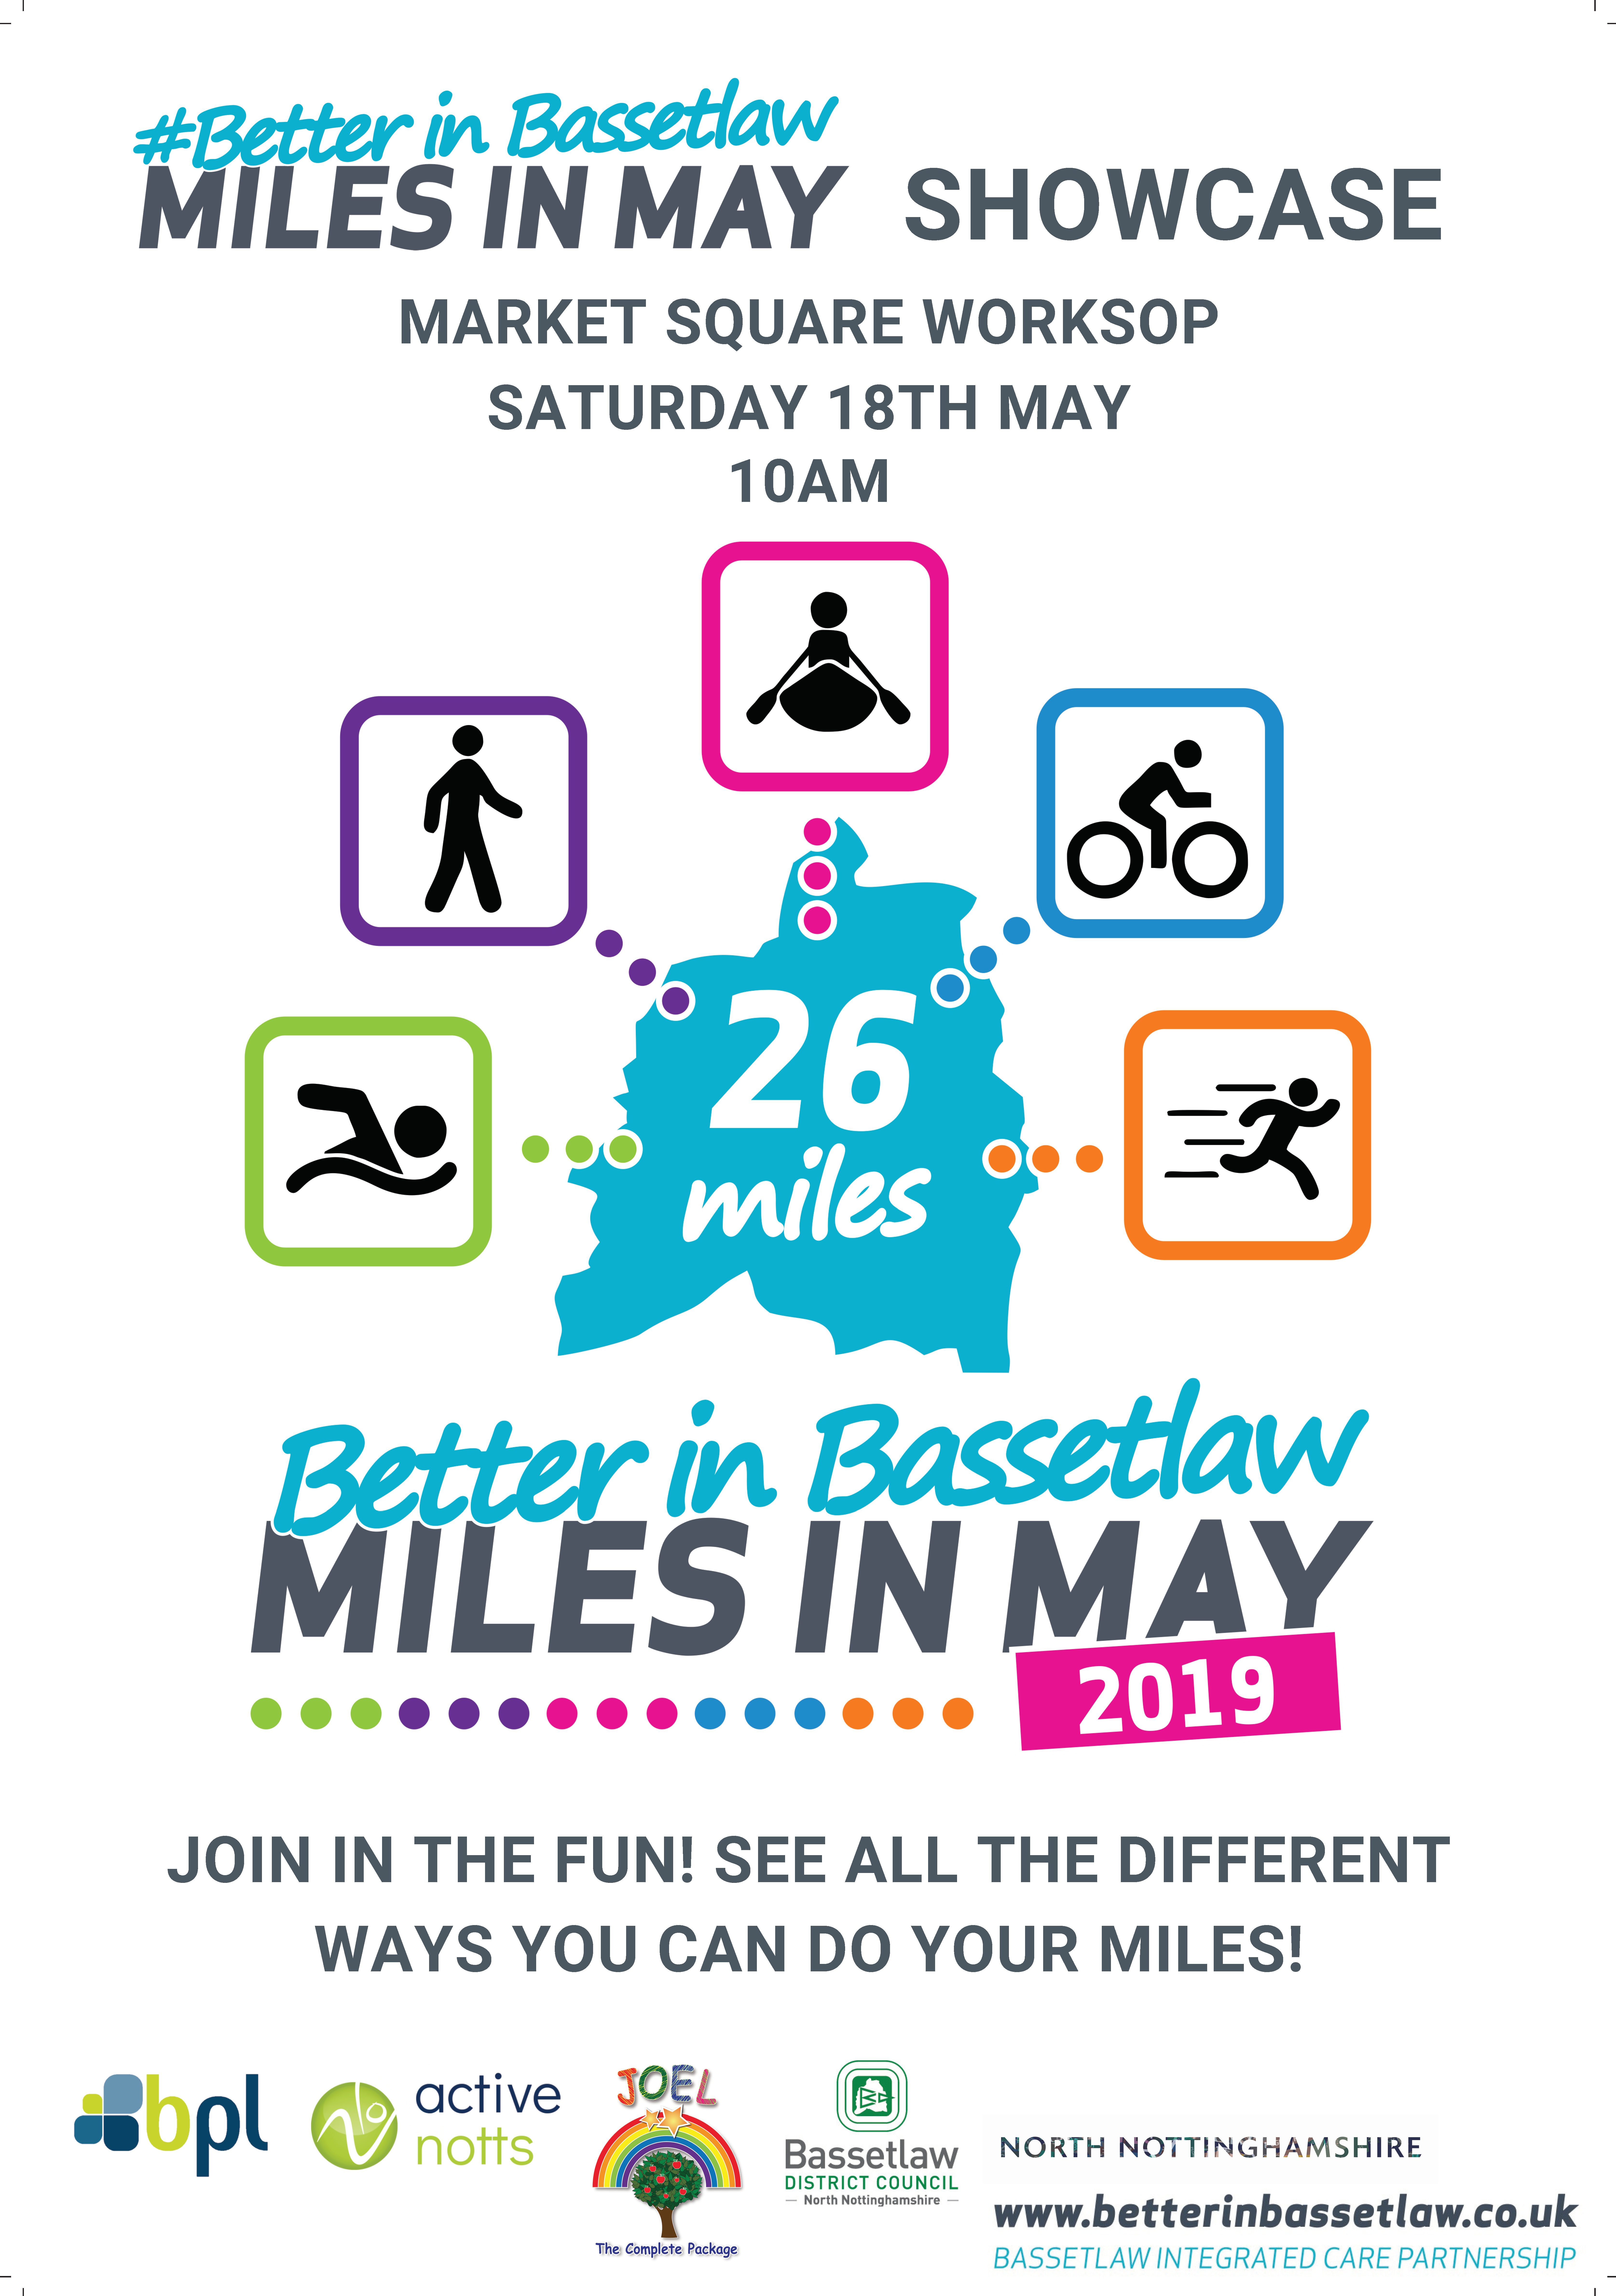 Miles in May showcase event worksop saturday 18 may 2019 bassetlaw better in bassetlaw